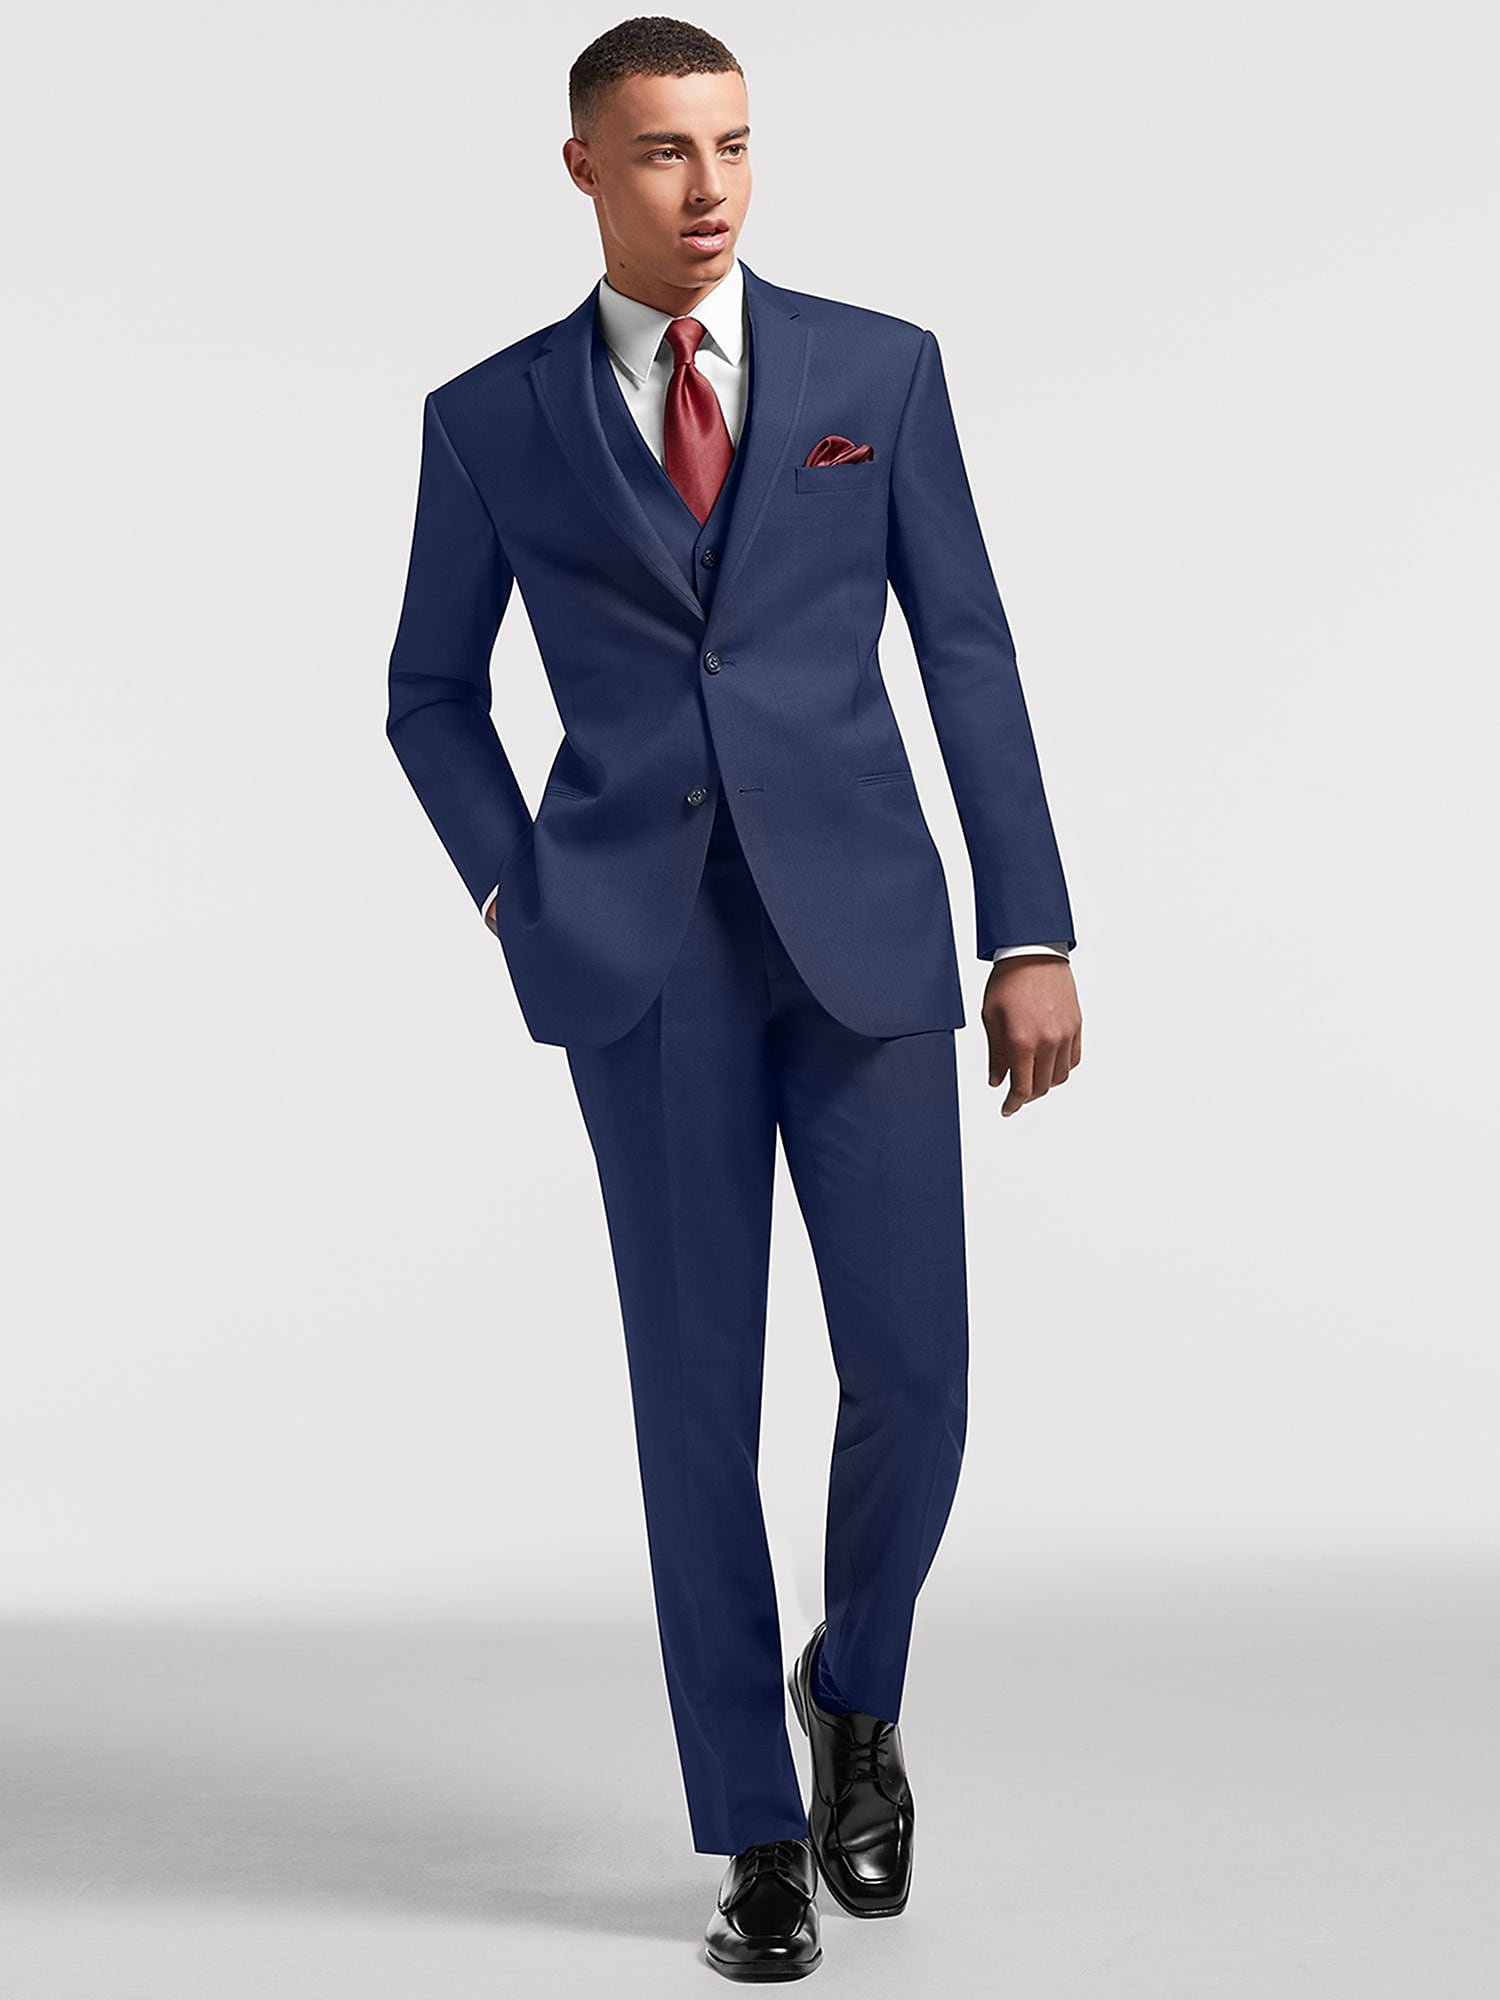 Blue Prom Suit by Calvin Klein | Suit Rental